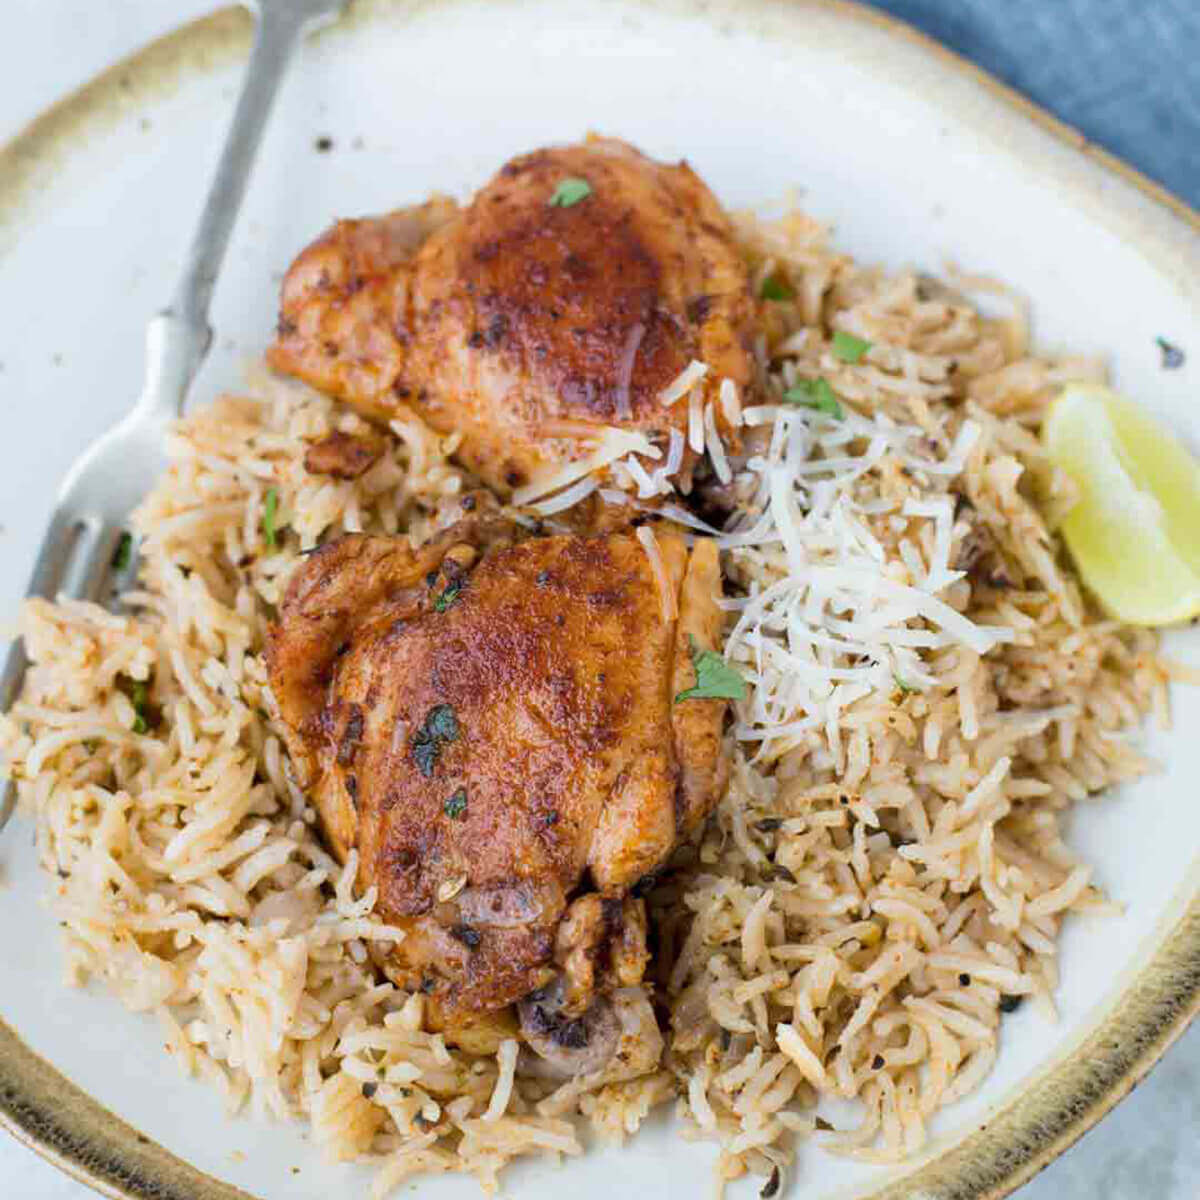 Garlic Herb Chicken on place served over brown rice.